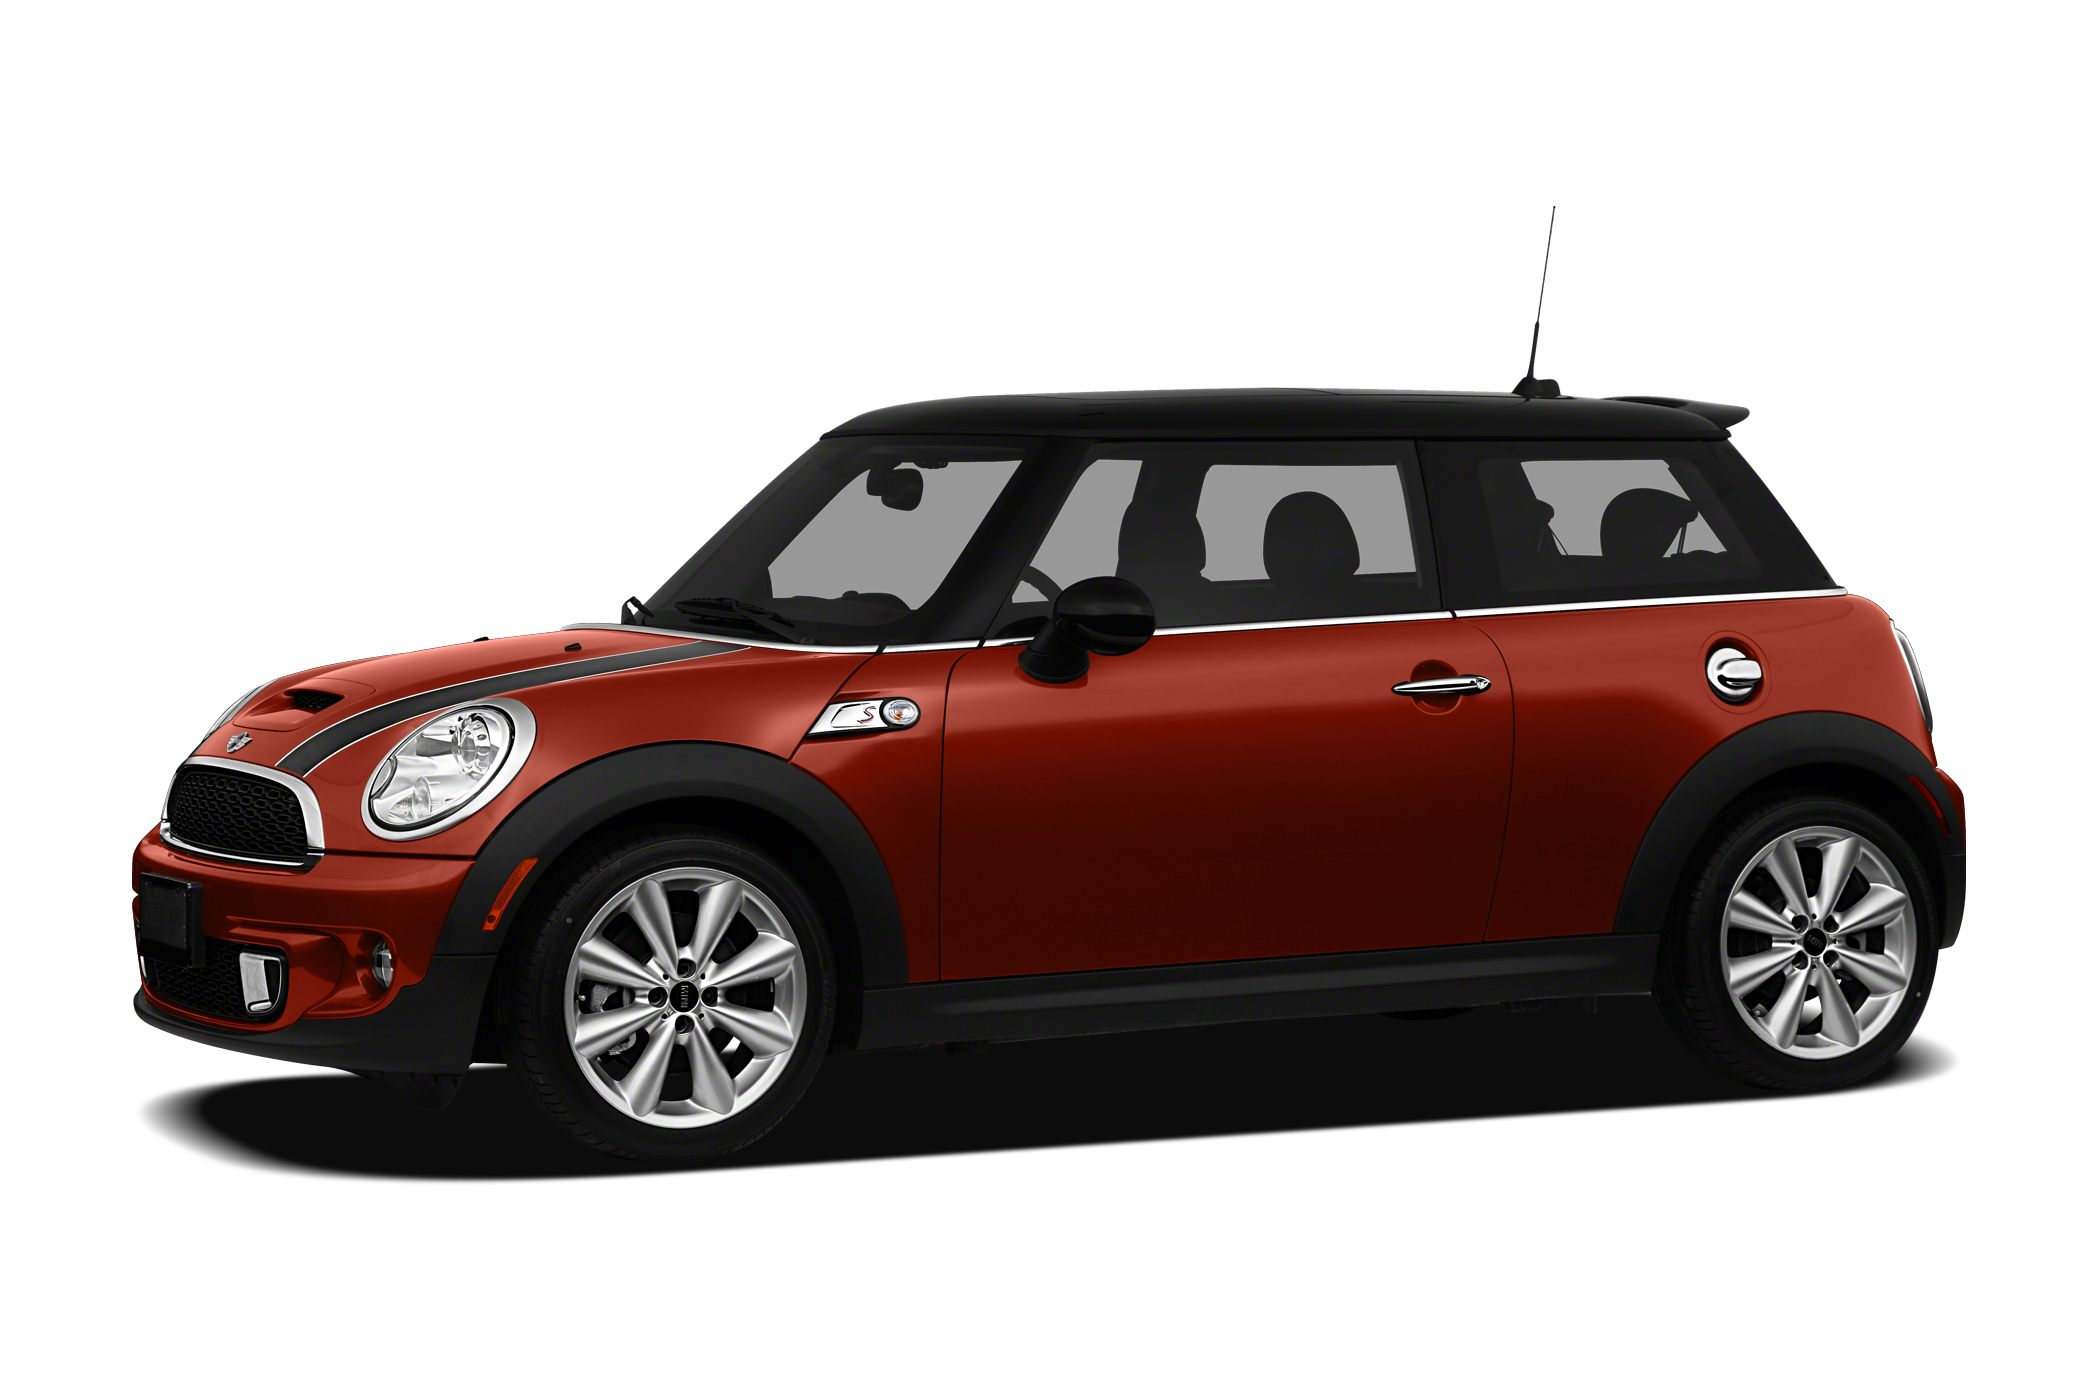 2012 MINI Cooper S Base Hatchback for sale in San Jose for $20,888 with 23,885 miles.